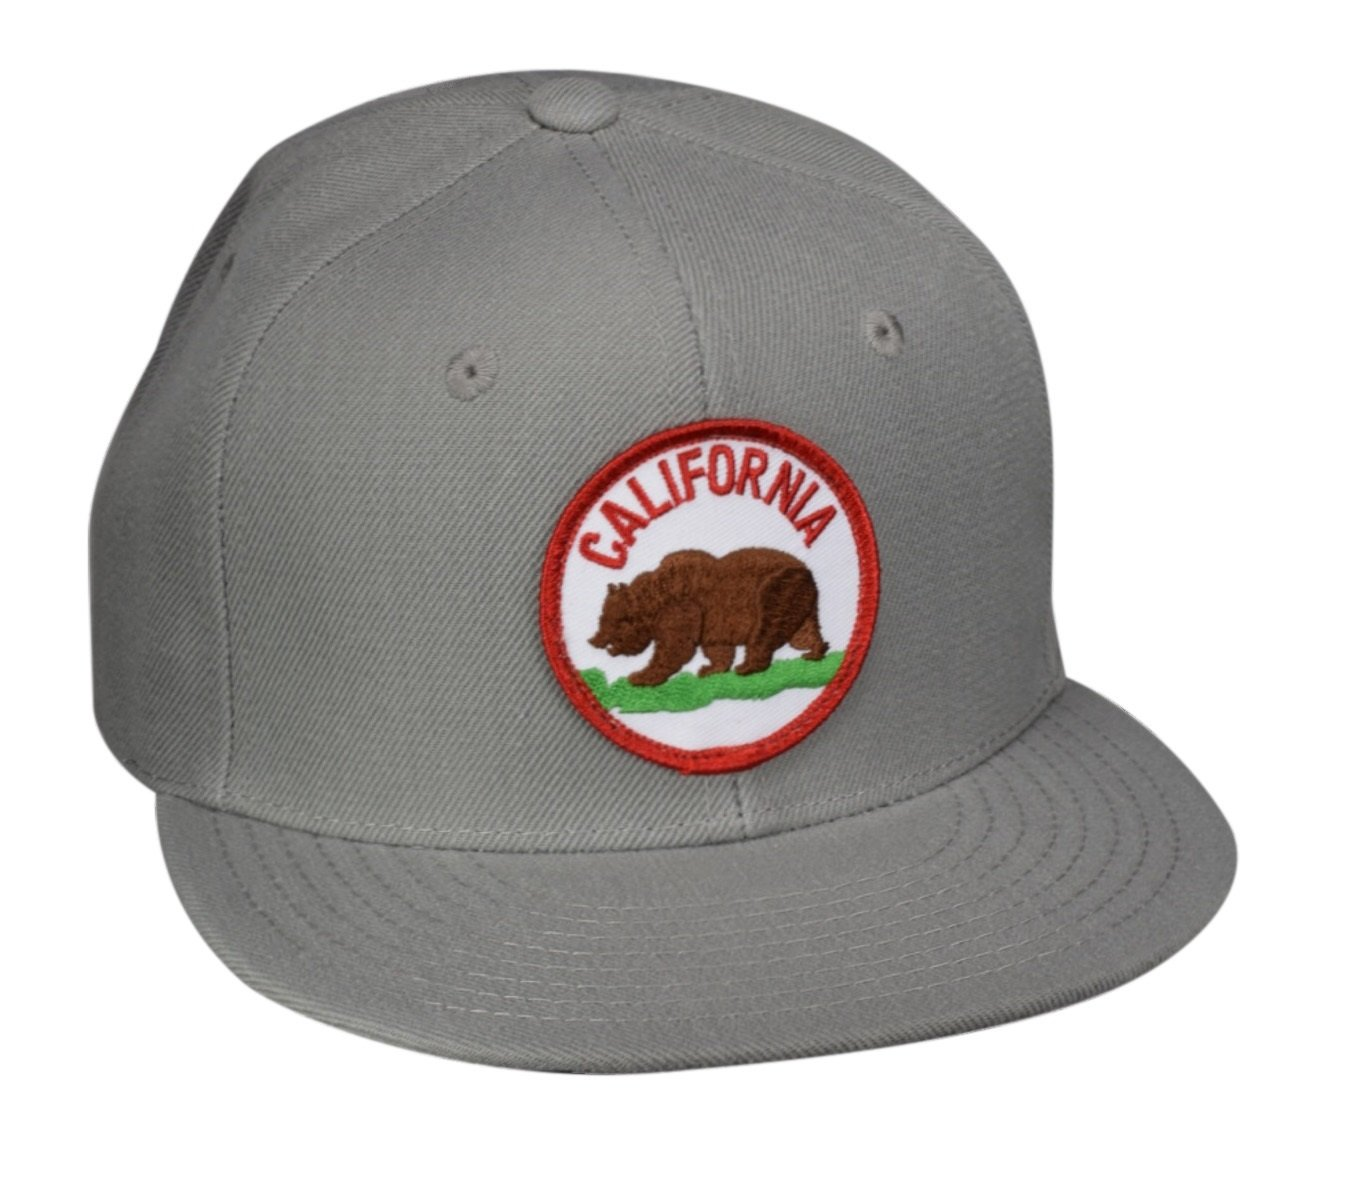 c3c5416f82217 ... best price california bear snapback hat by lets be irie gray a4627 73201